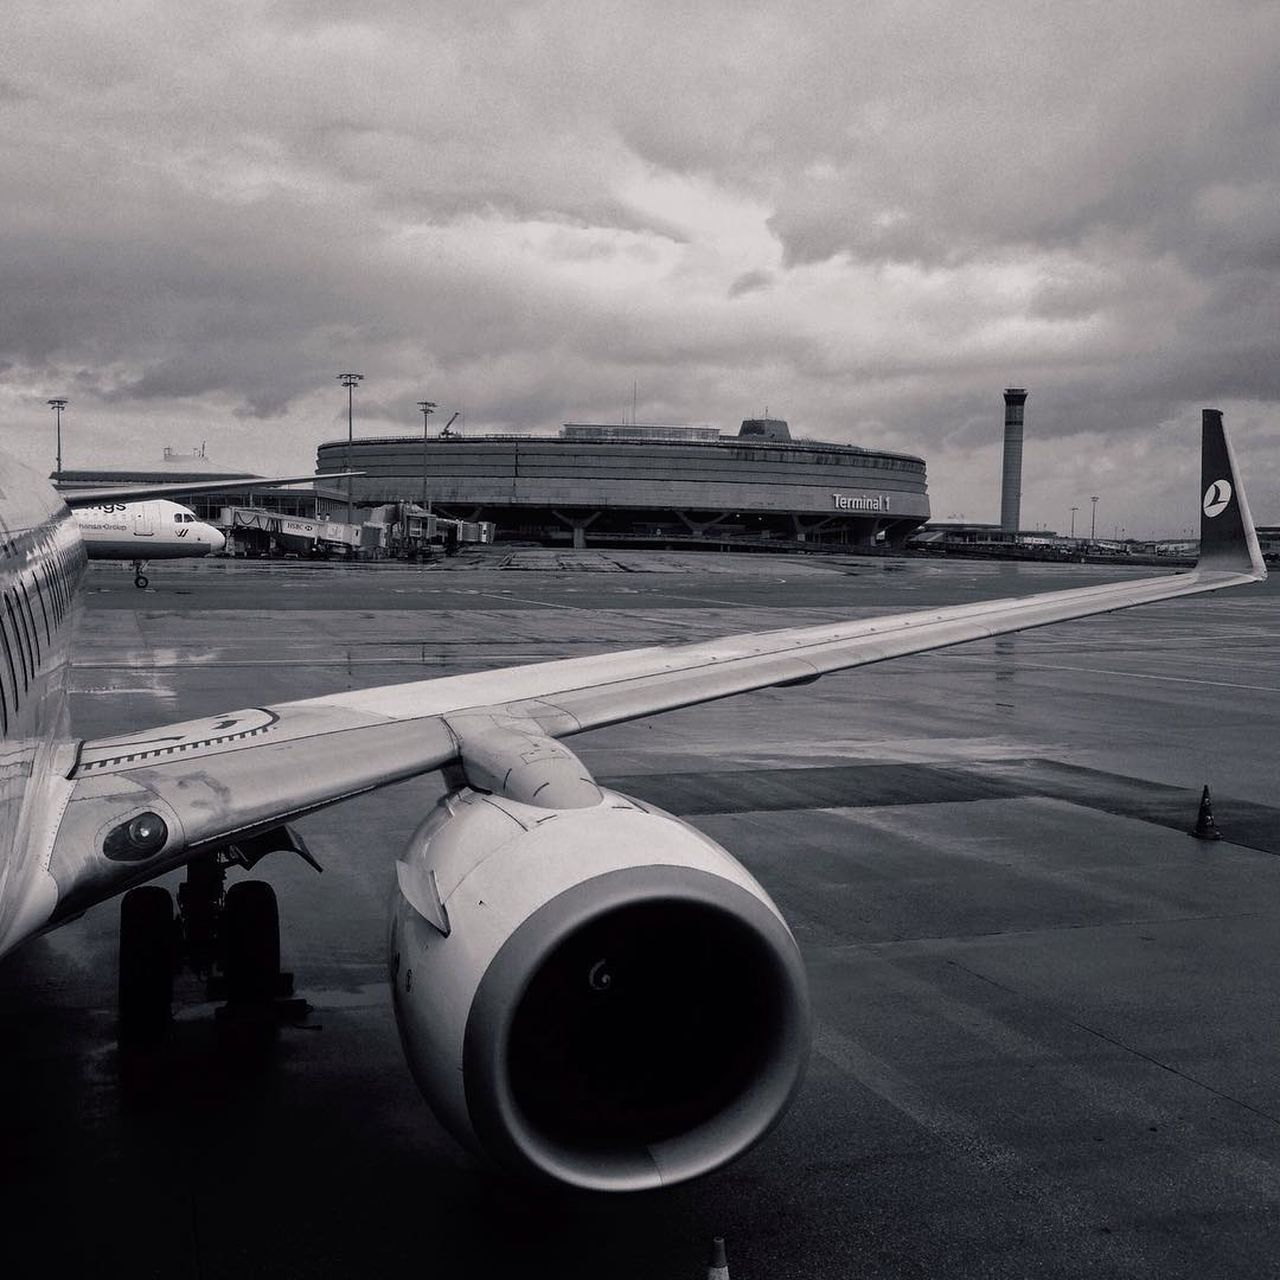 airplane, transportation, airport, airport runway, air vehicle, cloud - sky, sky, mode of transport, jet engine, travel, commercial airplane, outdoors, day, runway, no people